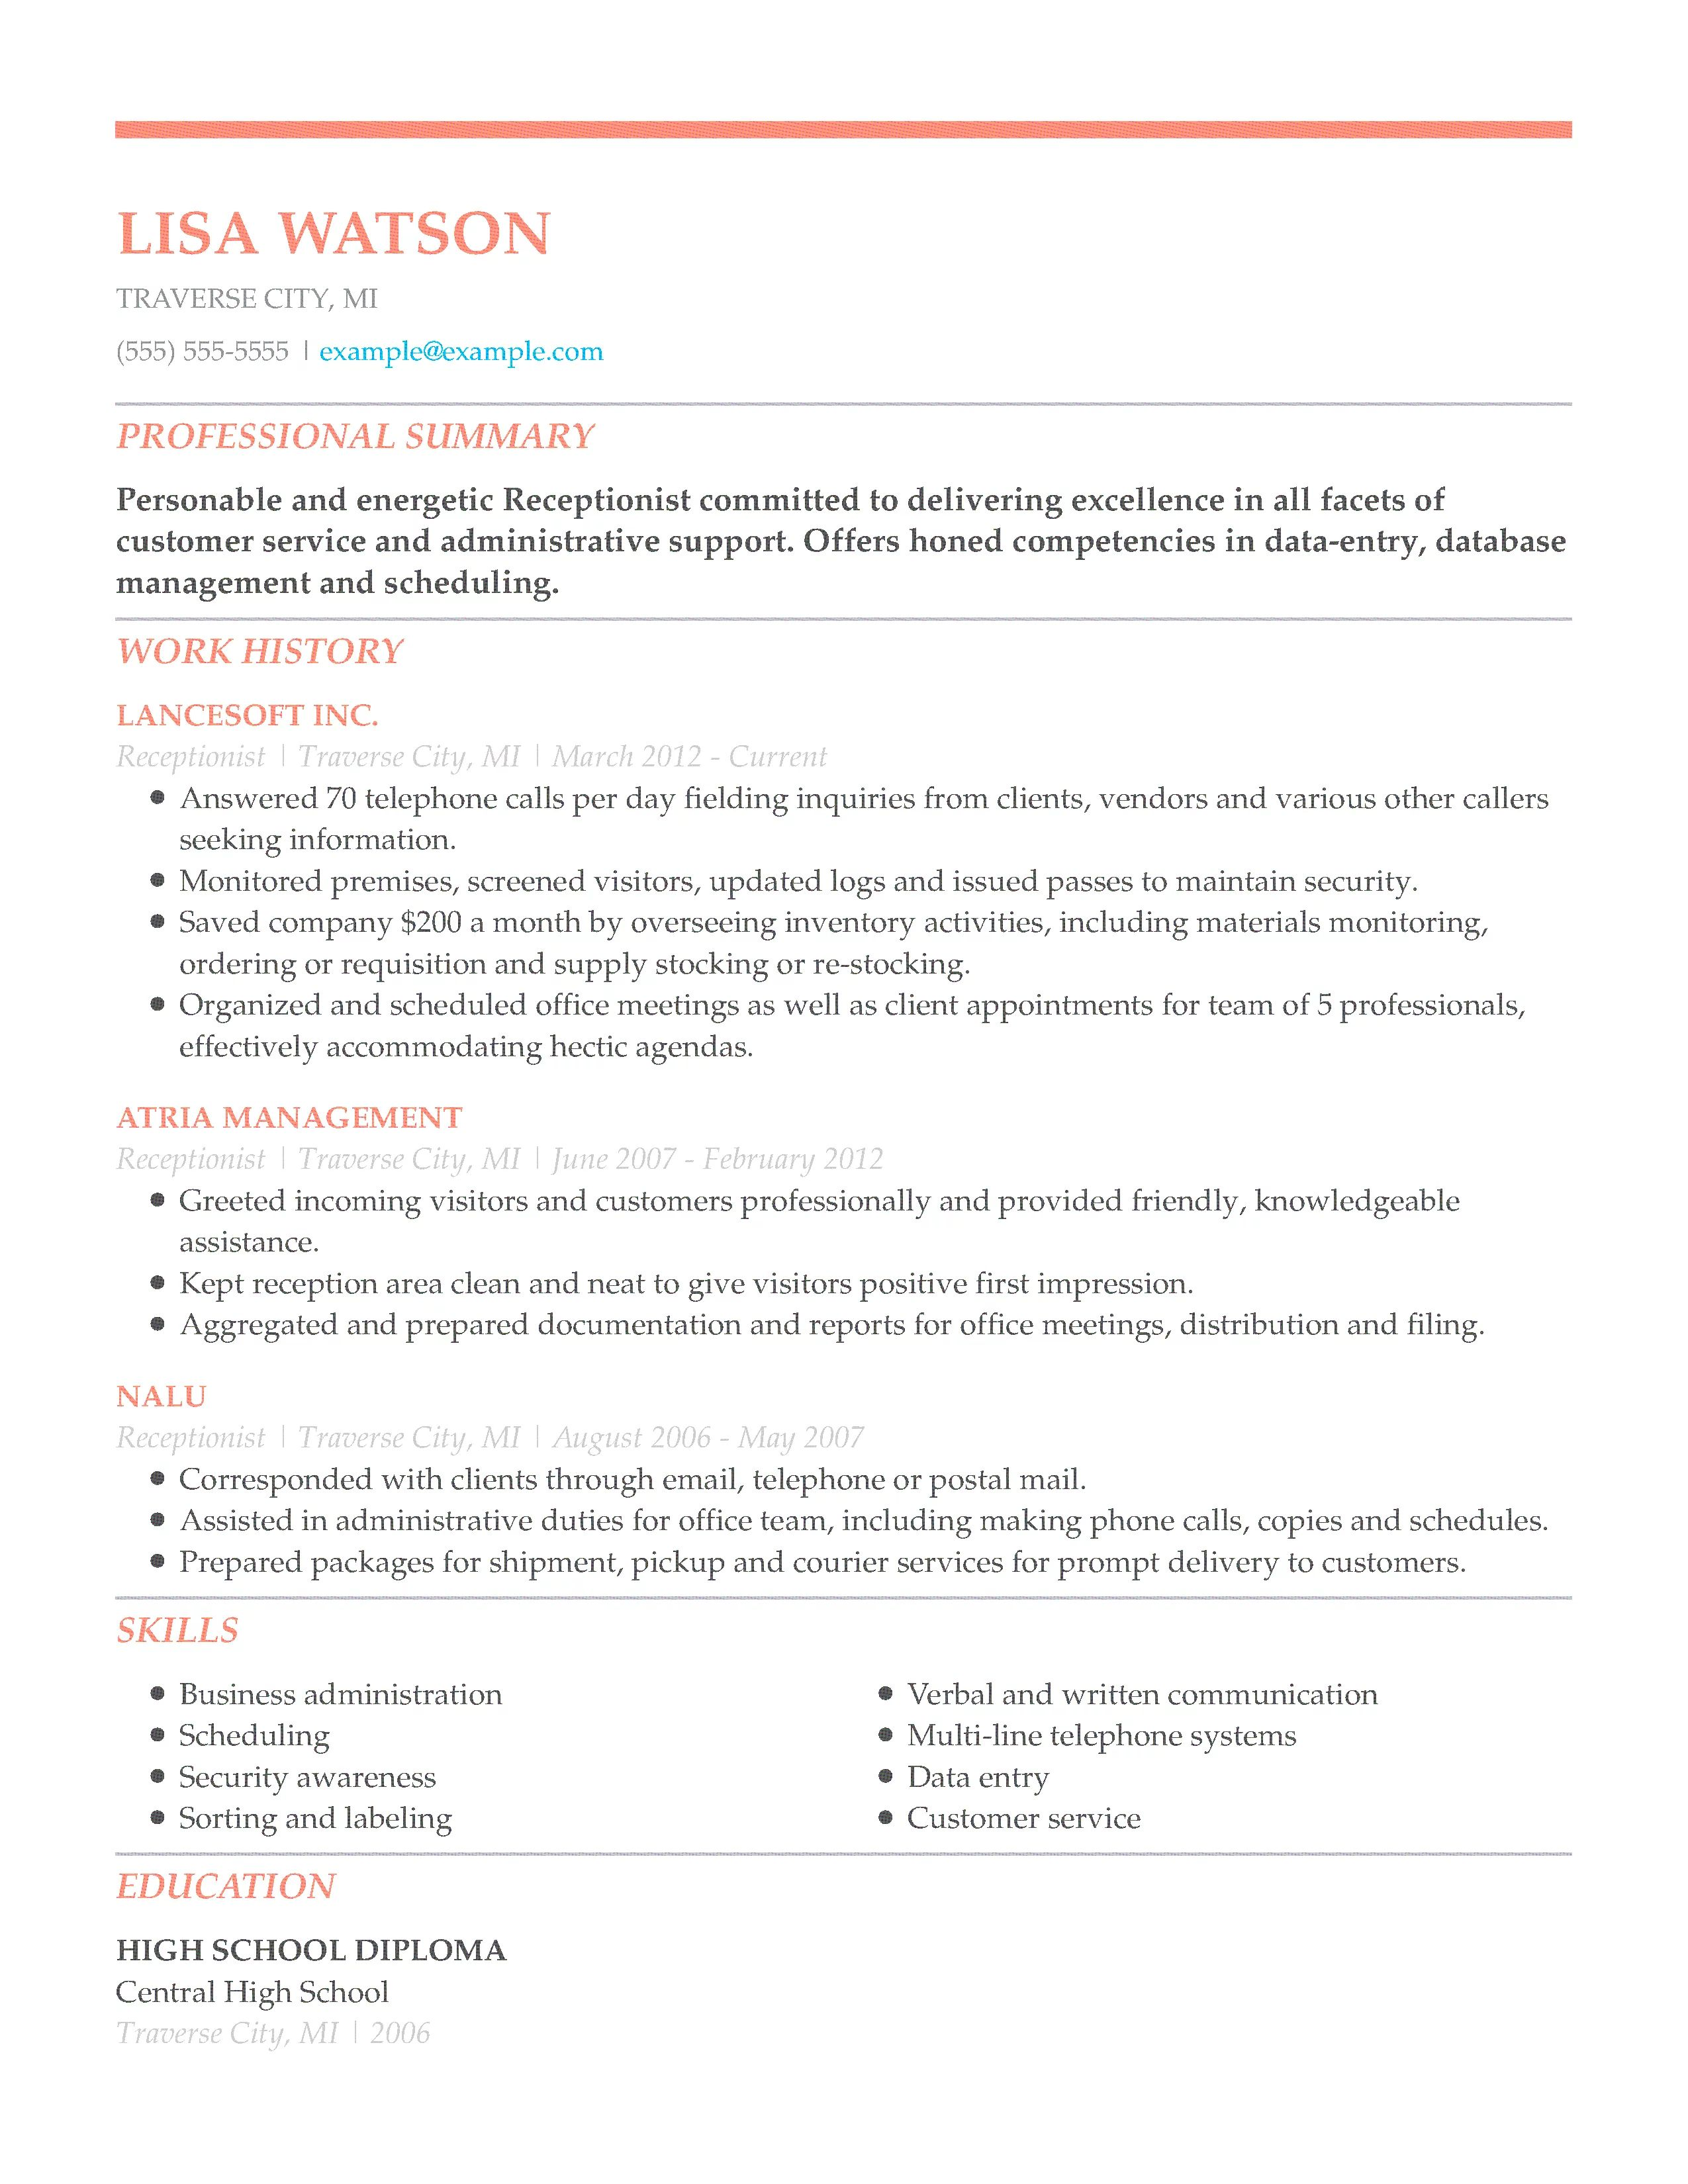 discuss your resume example answer